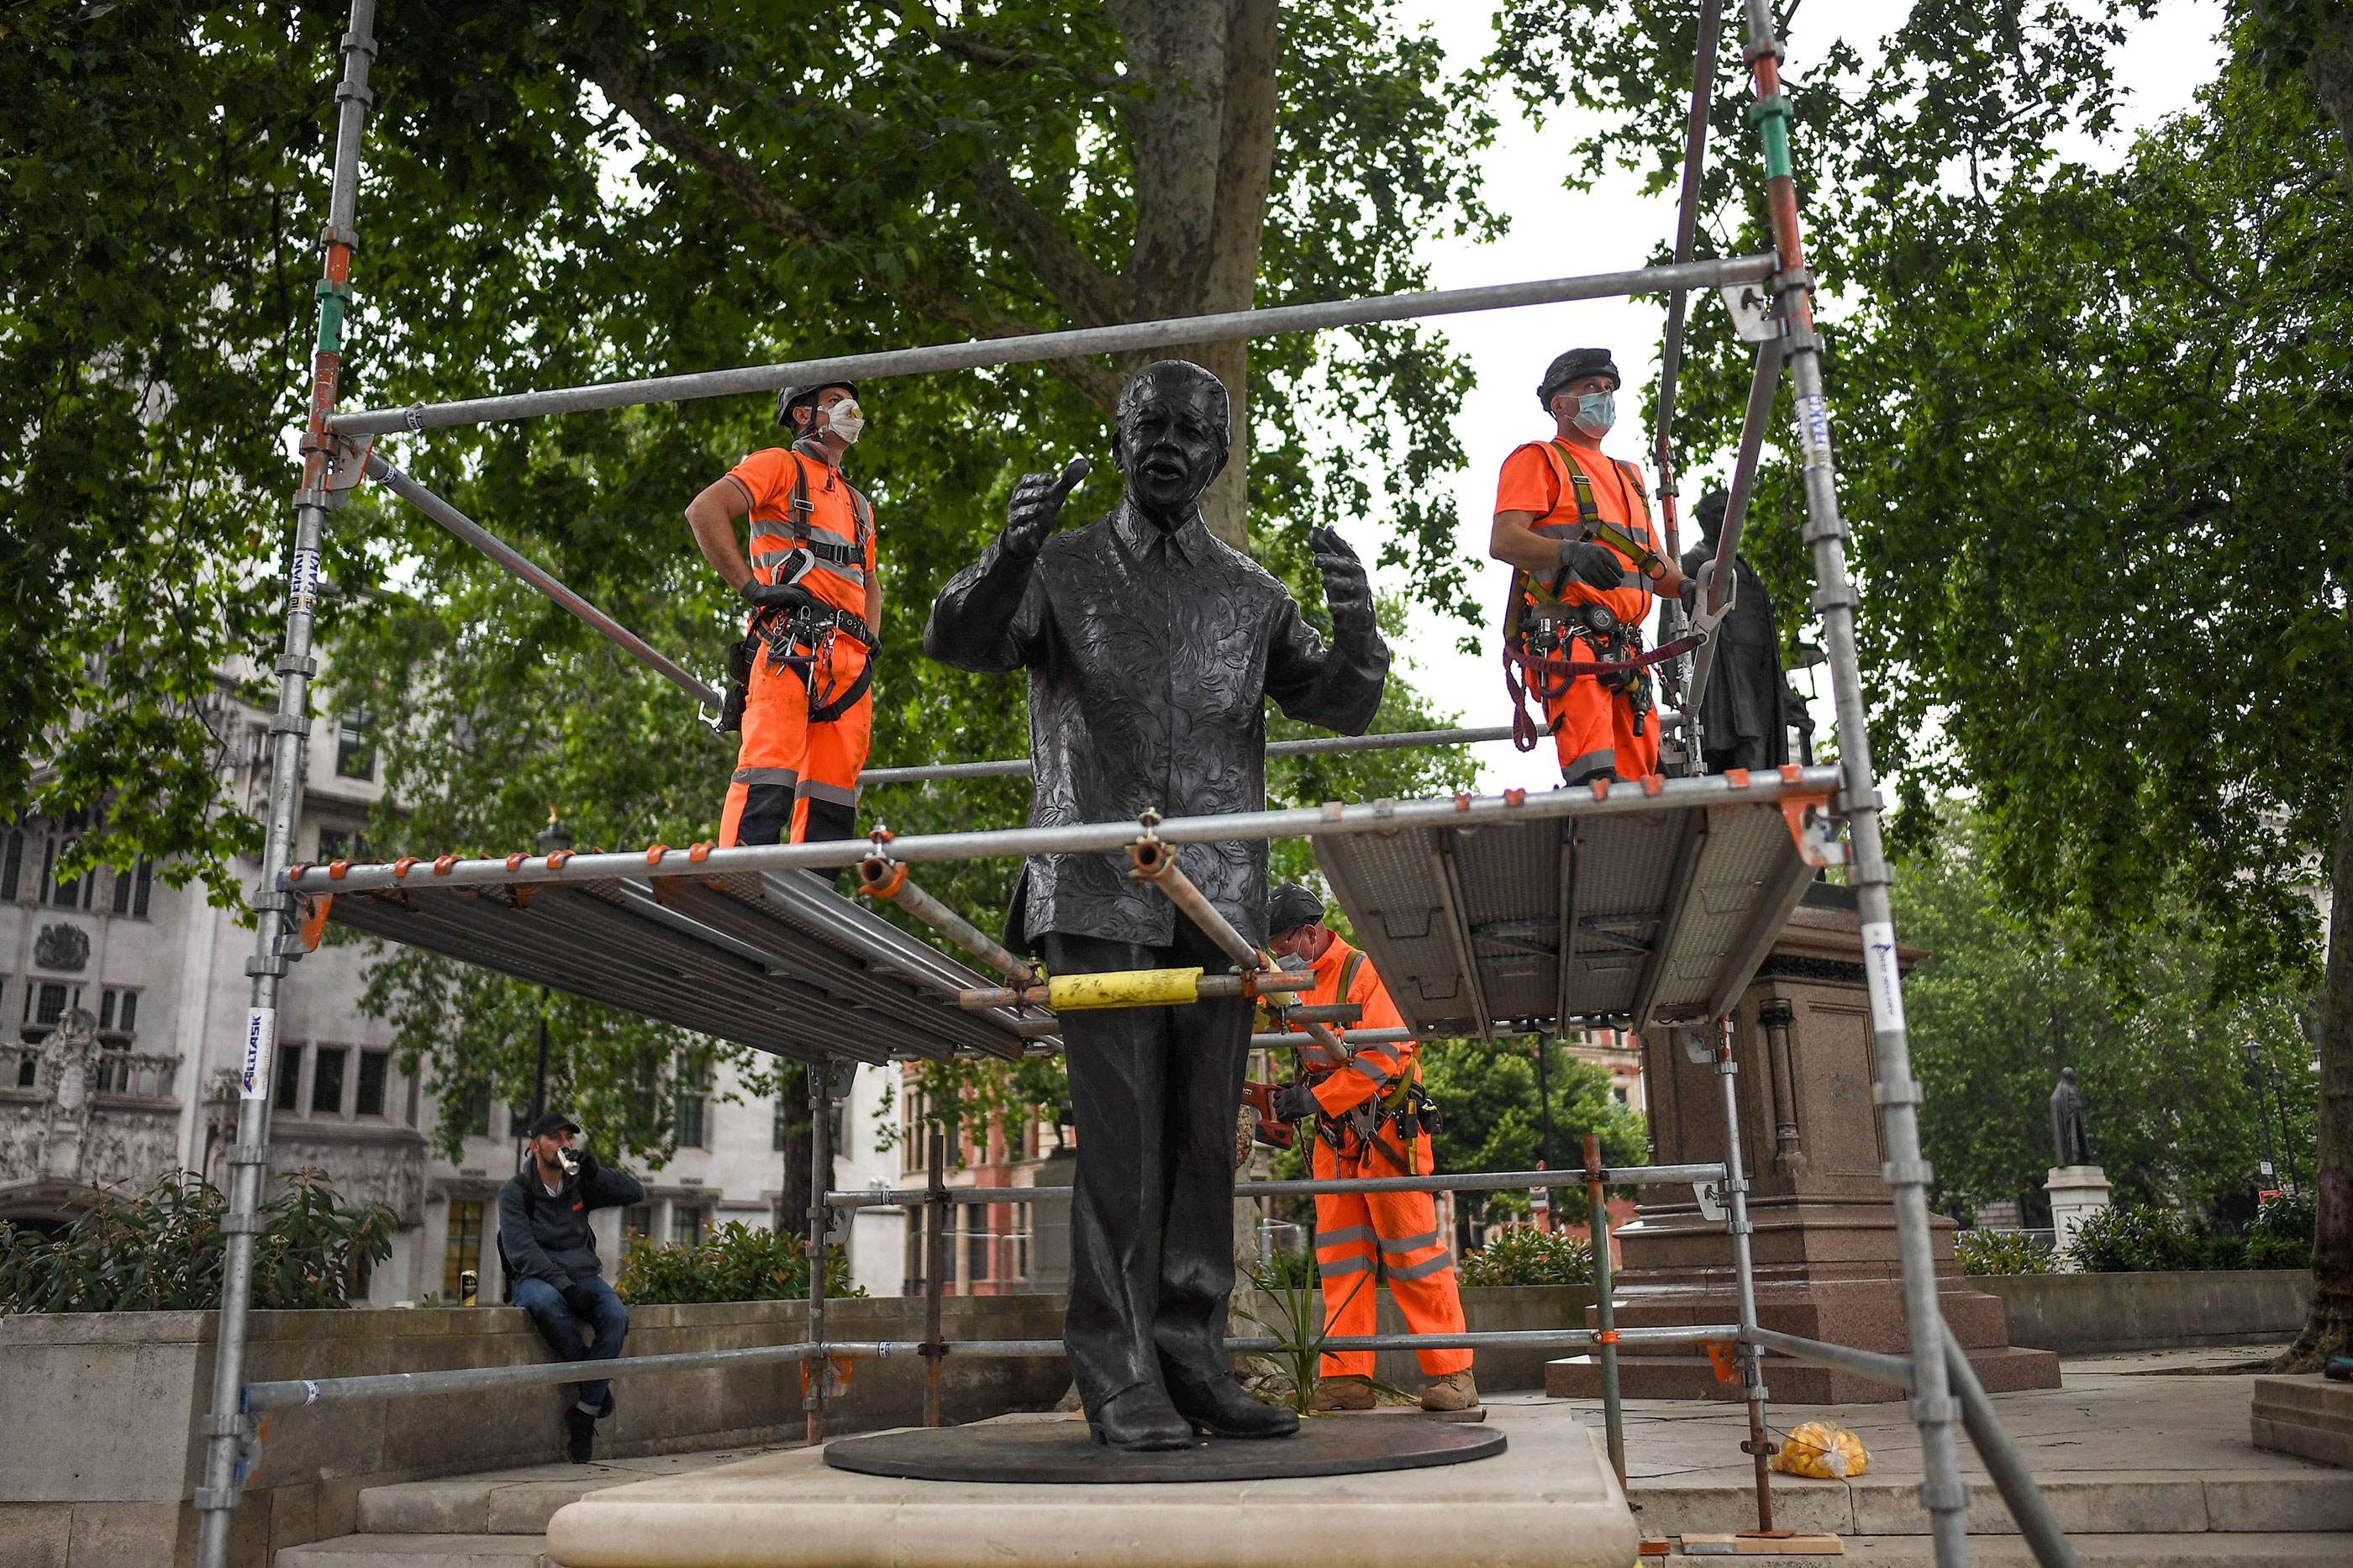 Workers build a protective barrier around the statue of Nelson Mandela in Parliament Square on June 12 in anticipation of protests on Saturday in London.